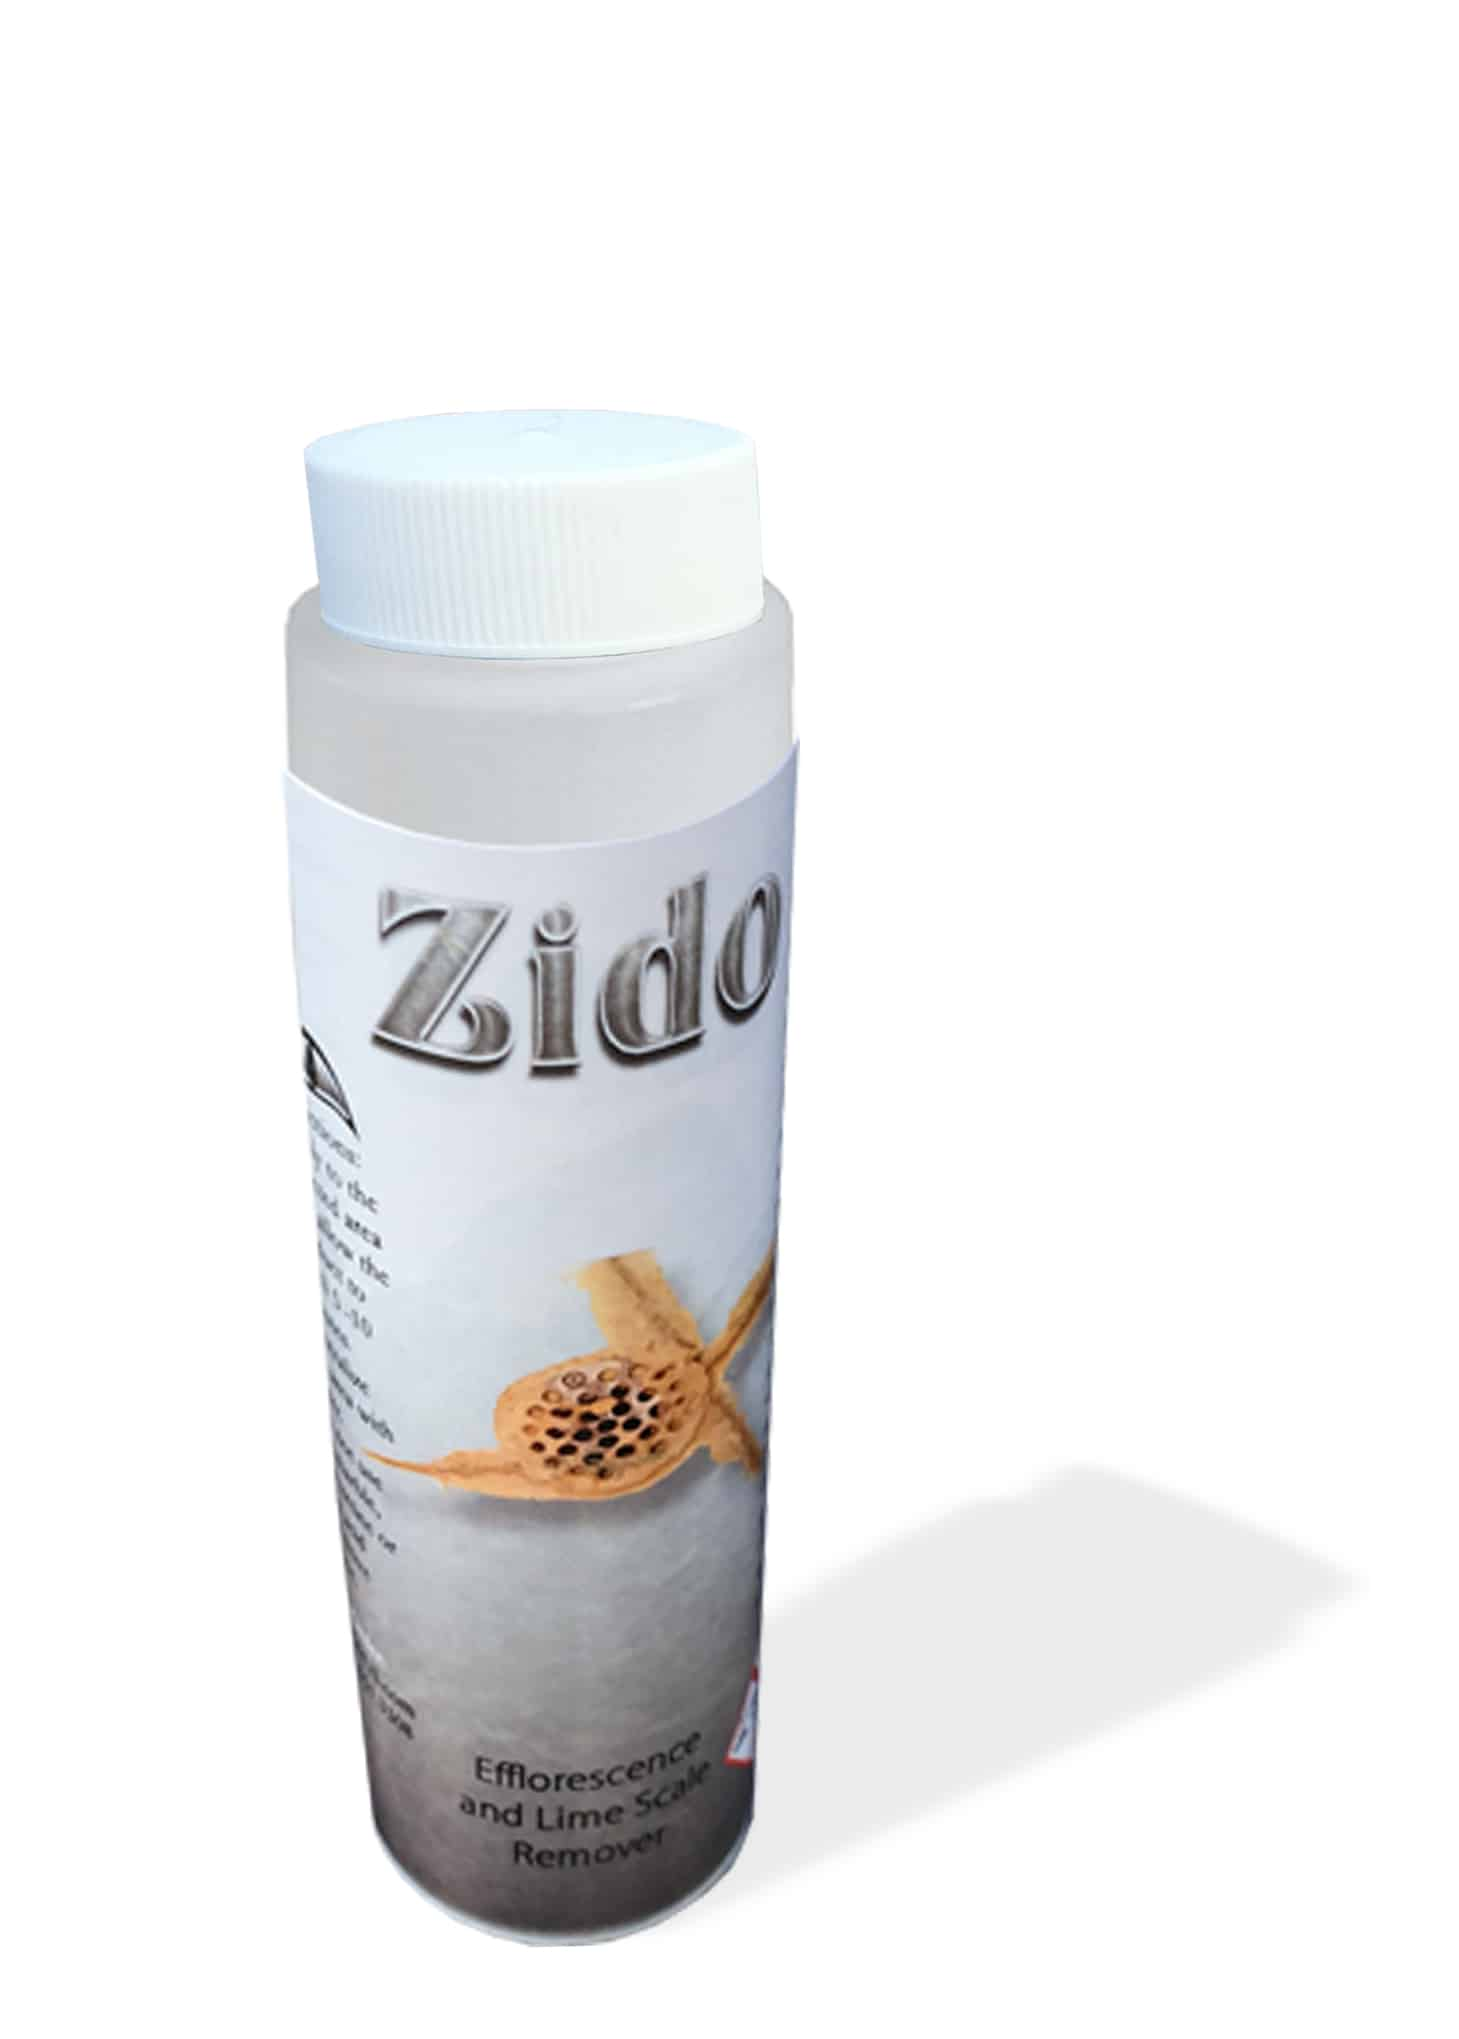 Efflorescence Cleaner and Remover - Zido - pFOkUS